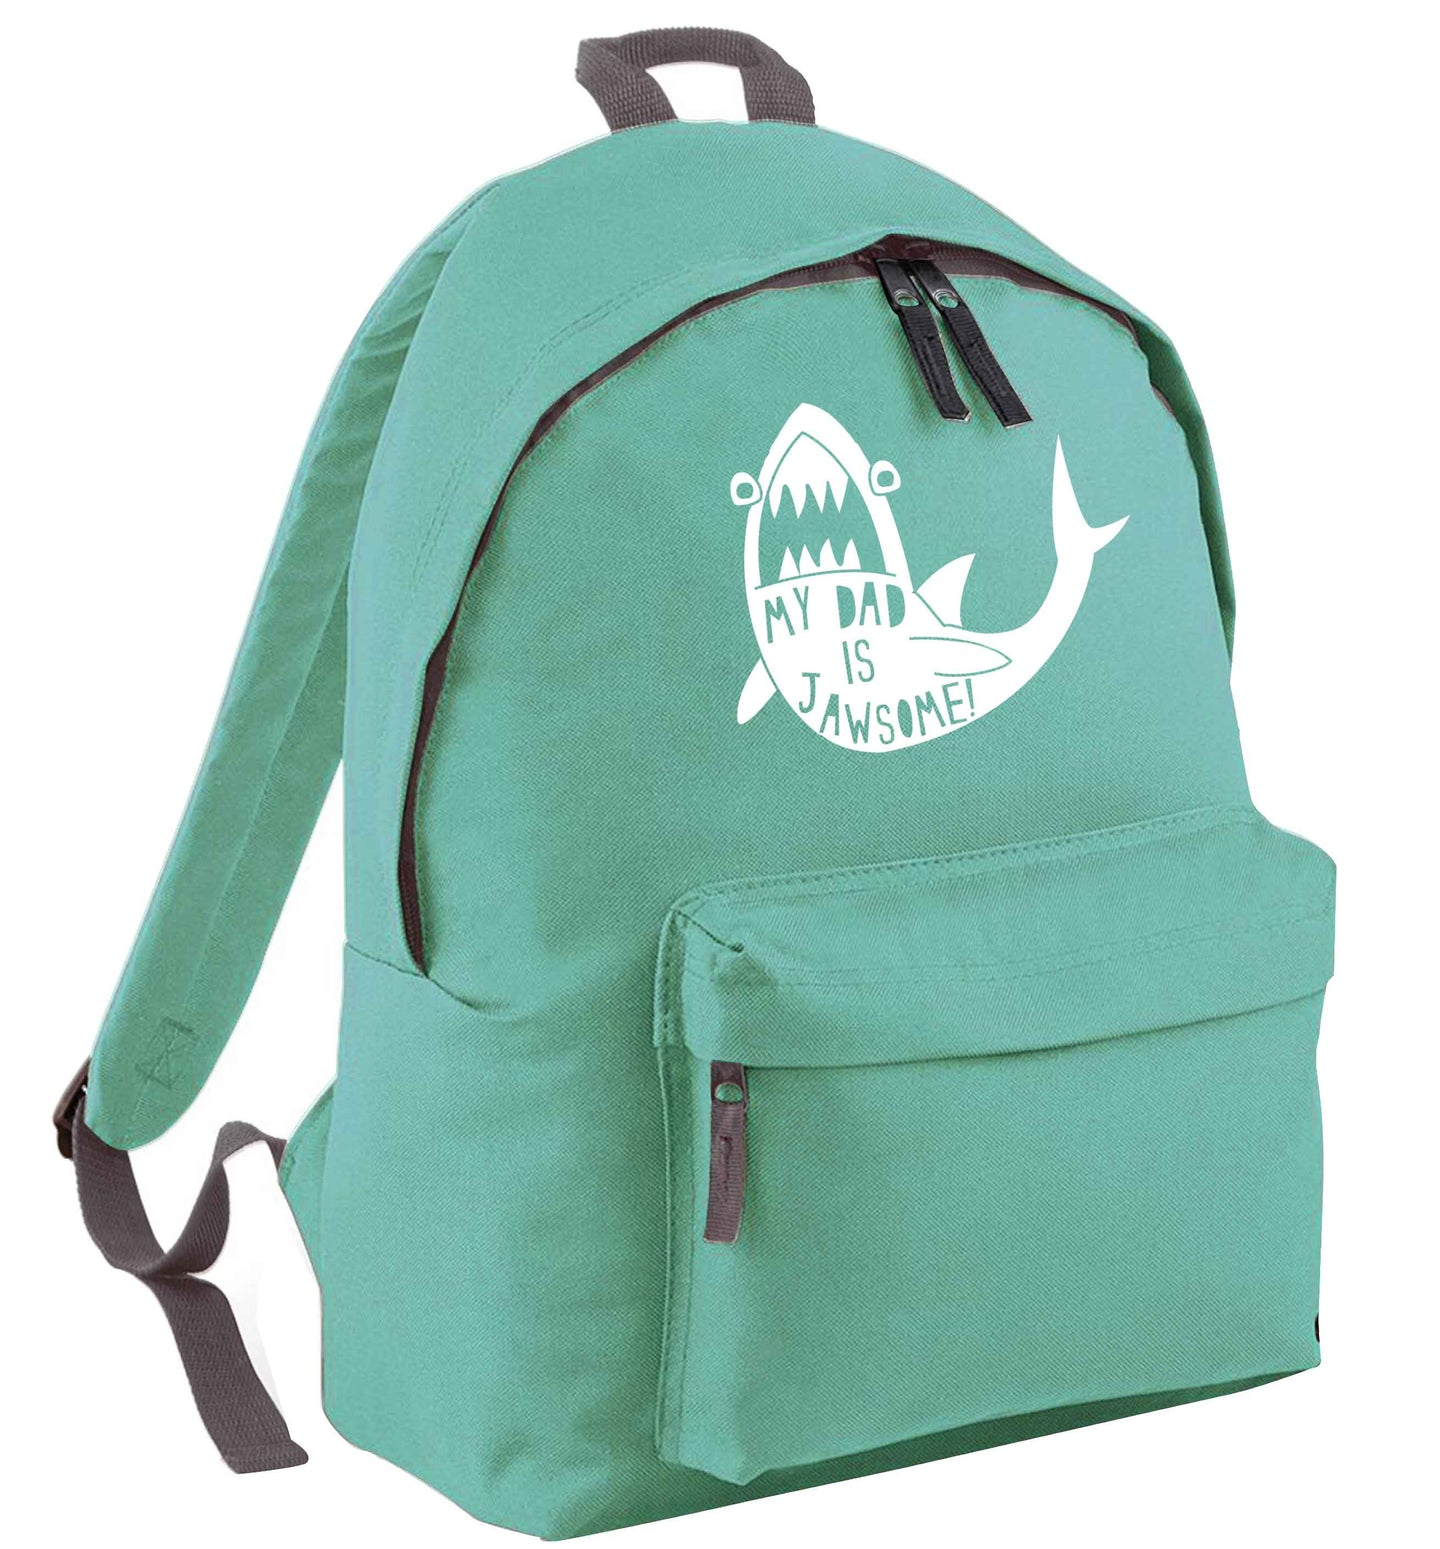 My Dad is jawsome mint adults backpack